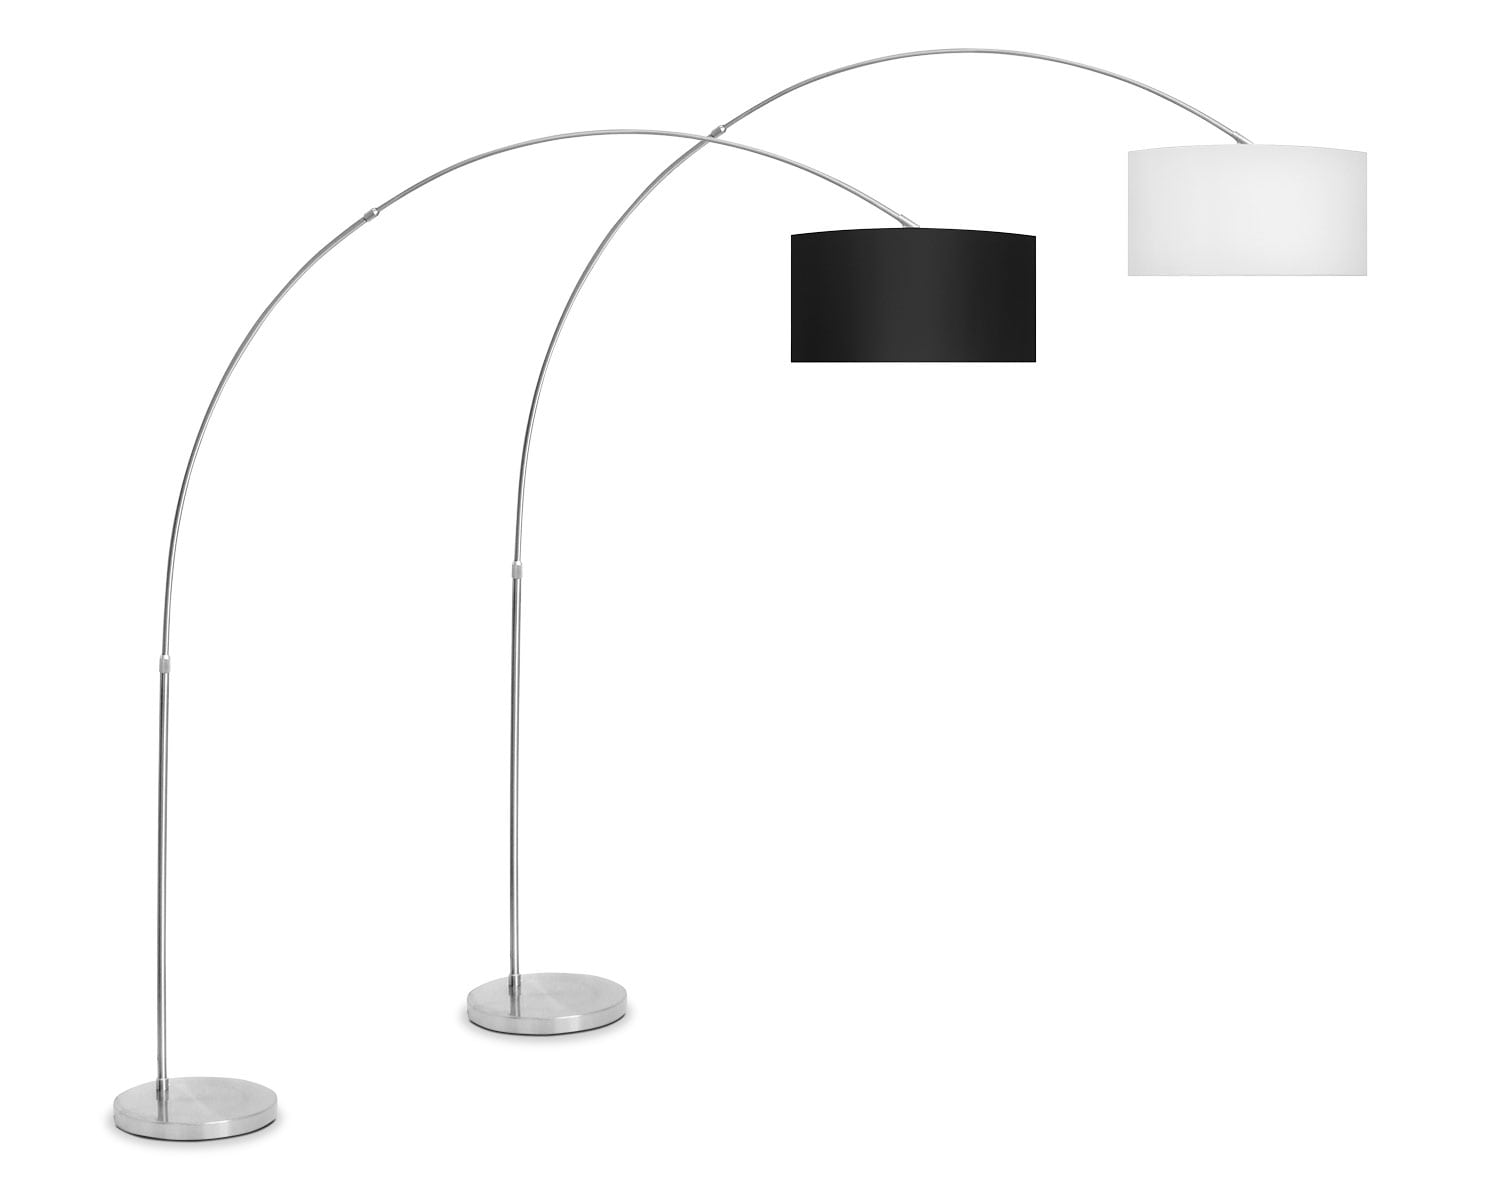 The Salon Floor Lamp Collection